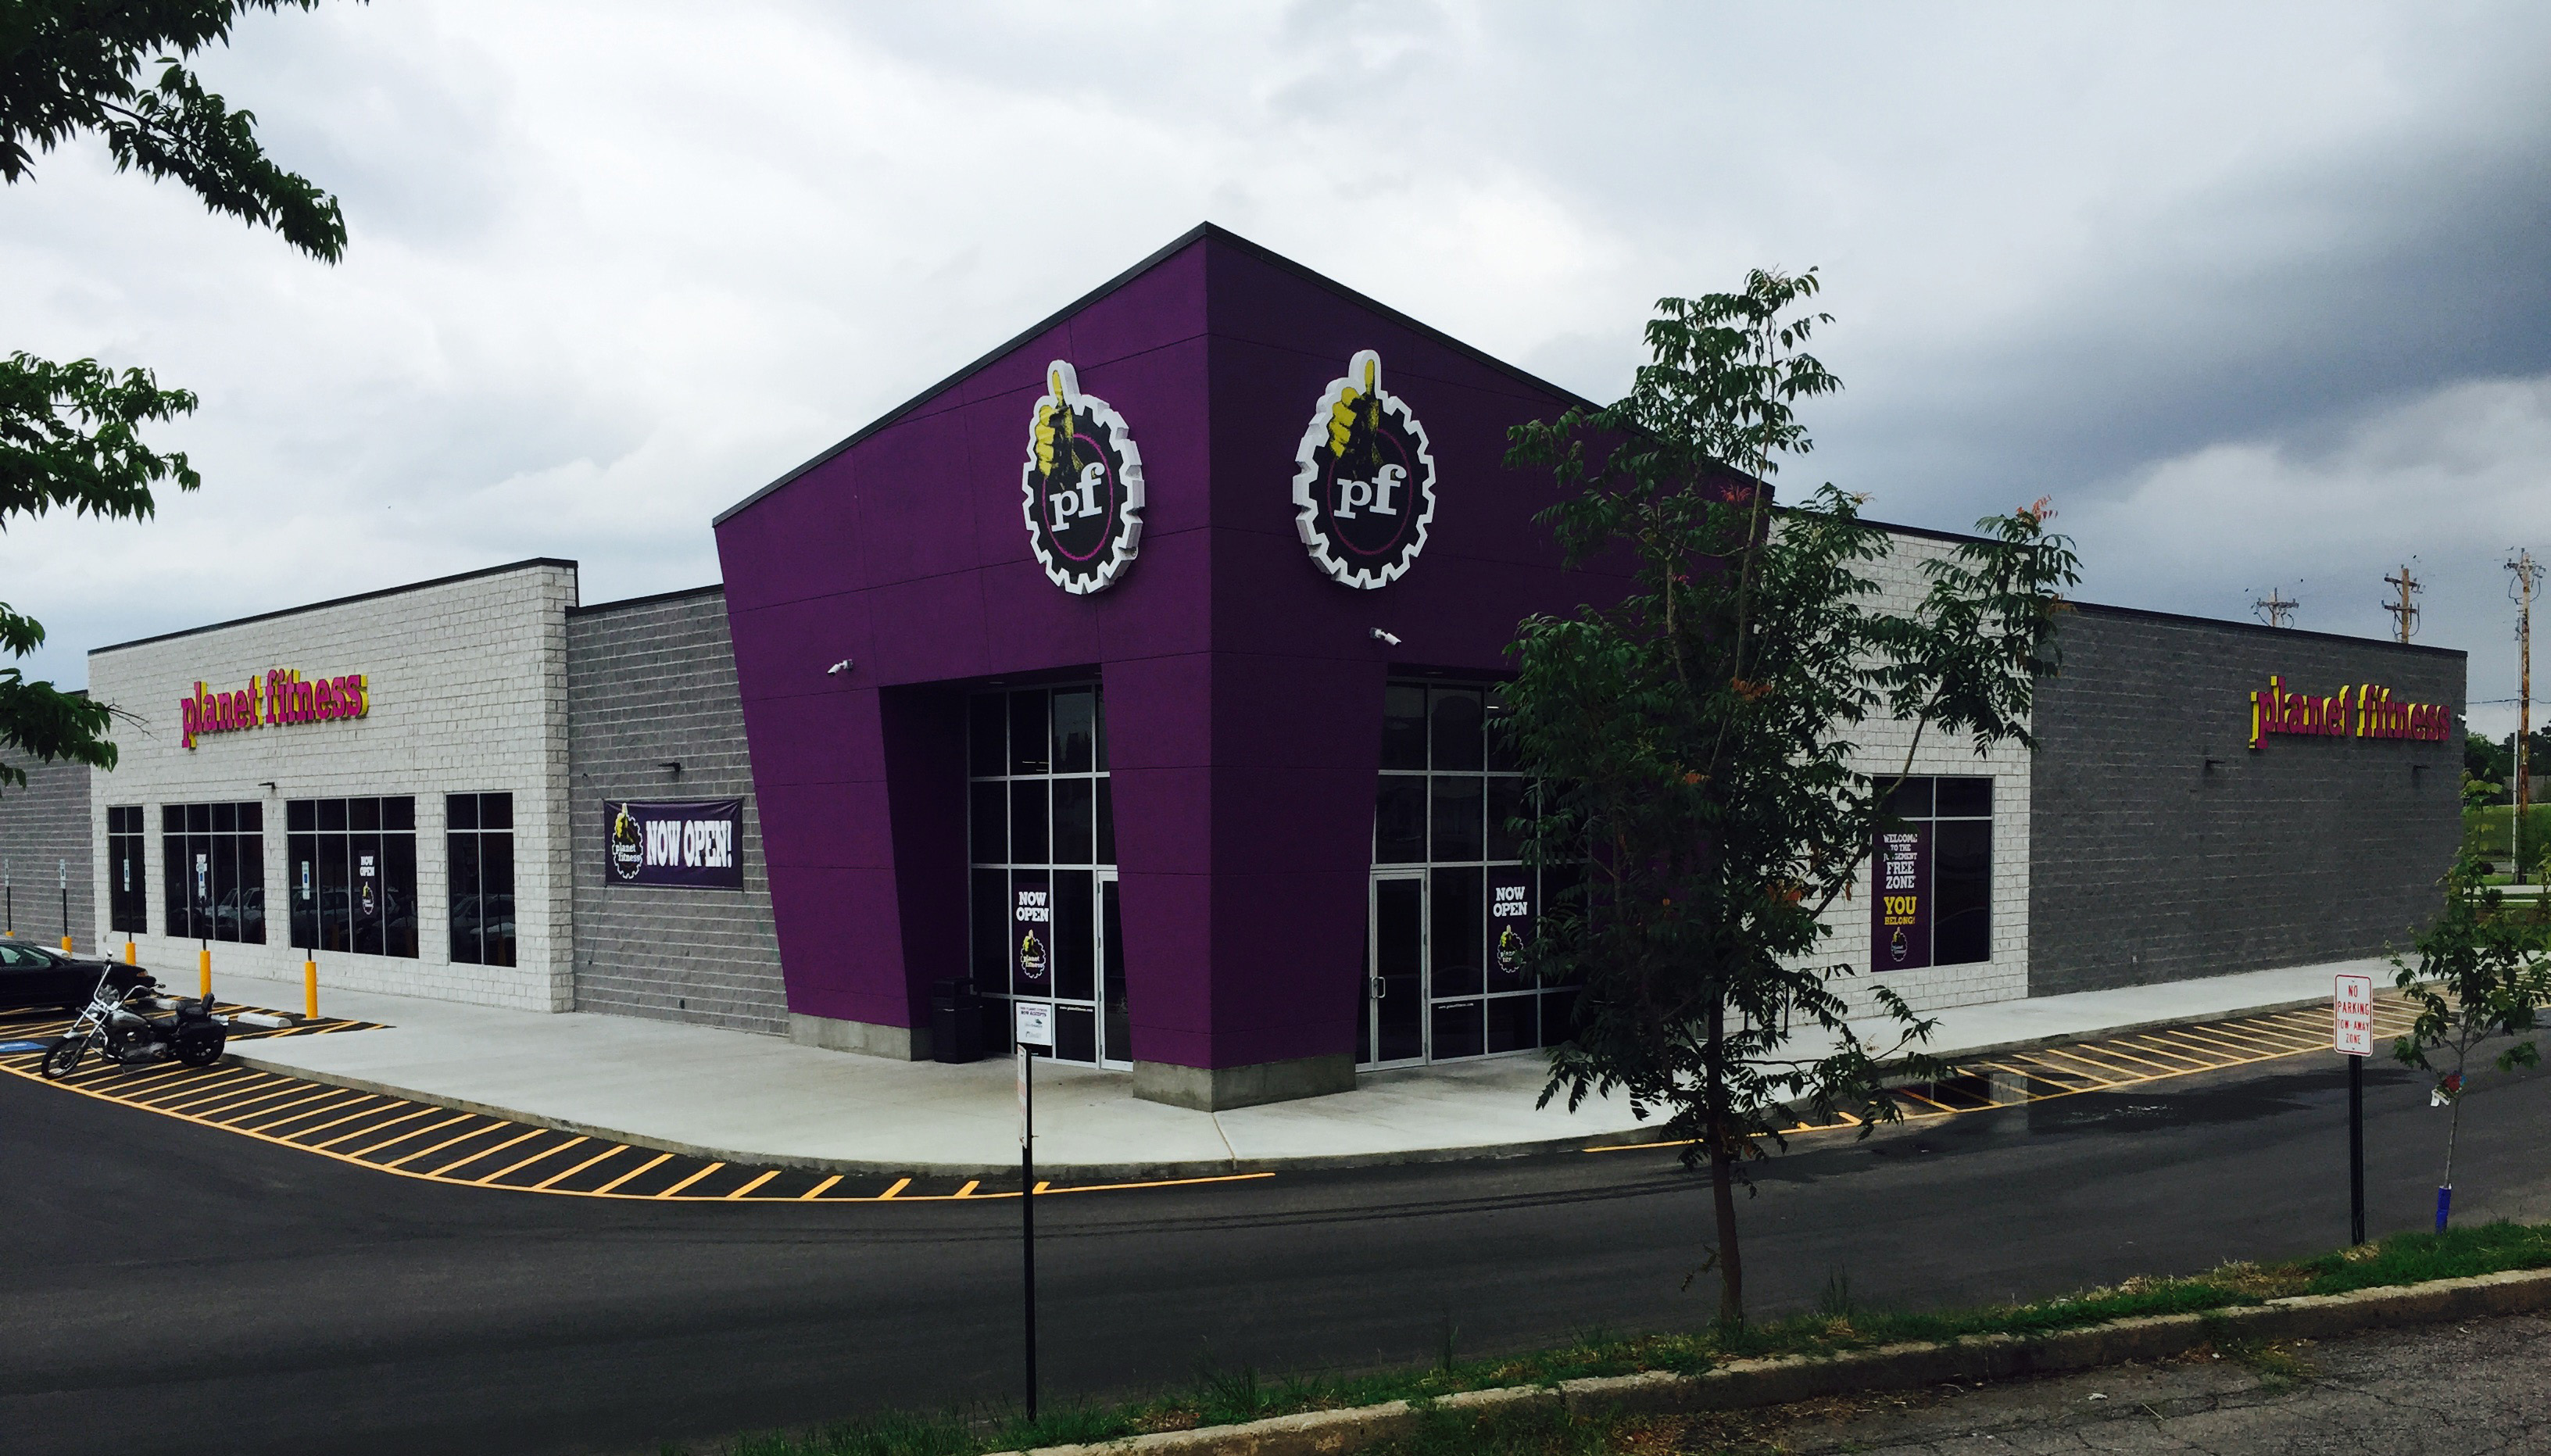 Planet Fitness Ft. Smith